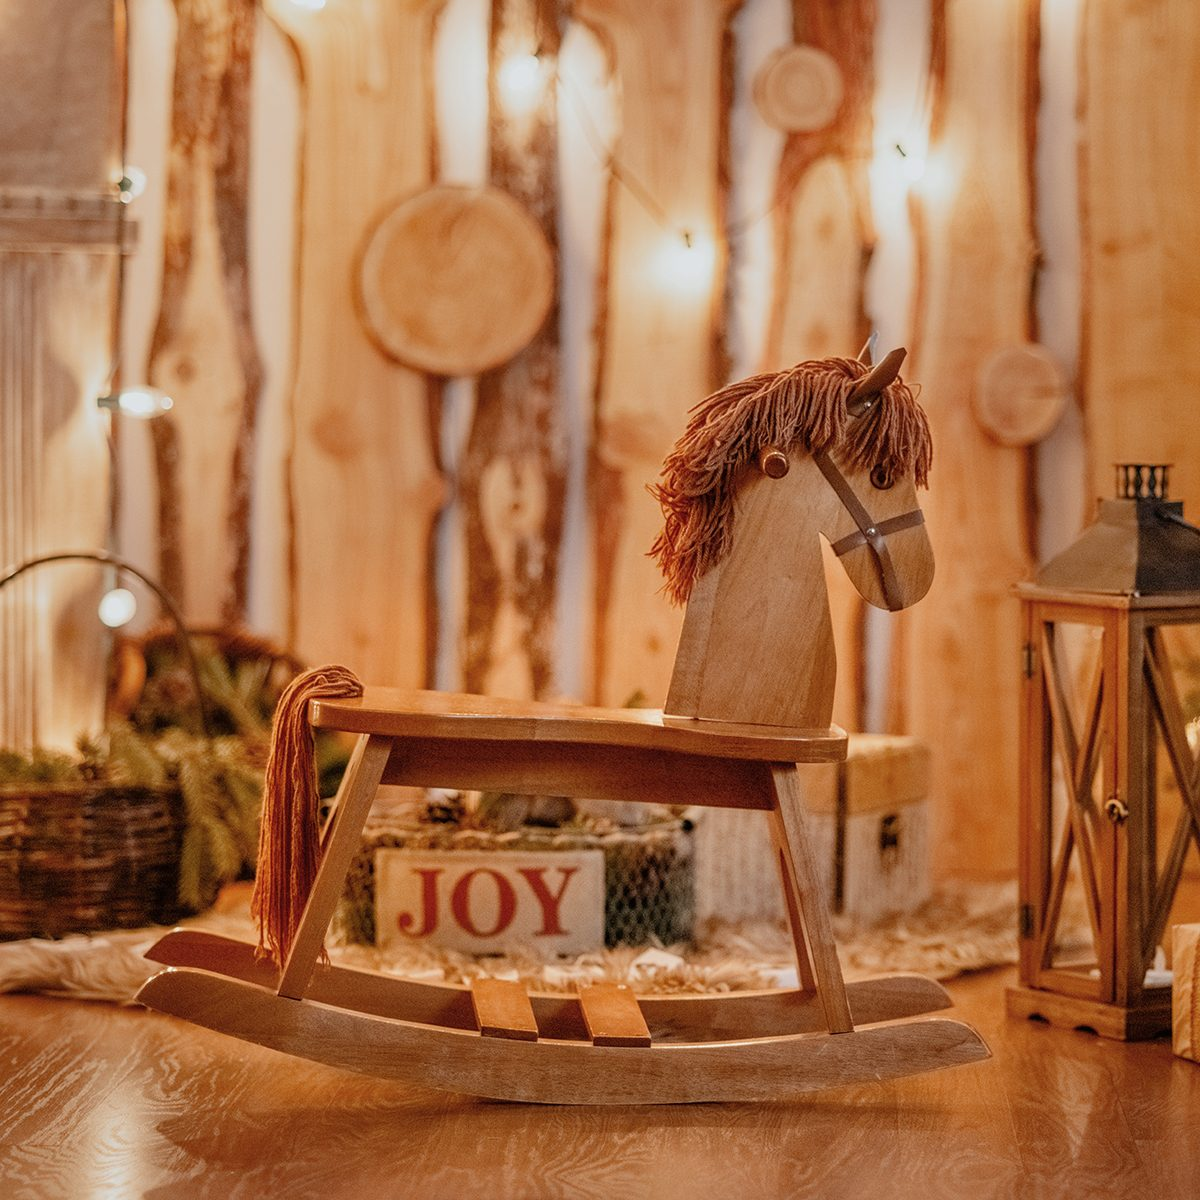 Wooden horse in Christmas decorations